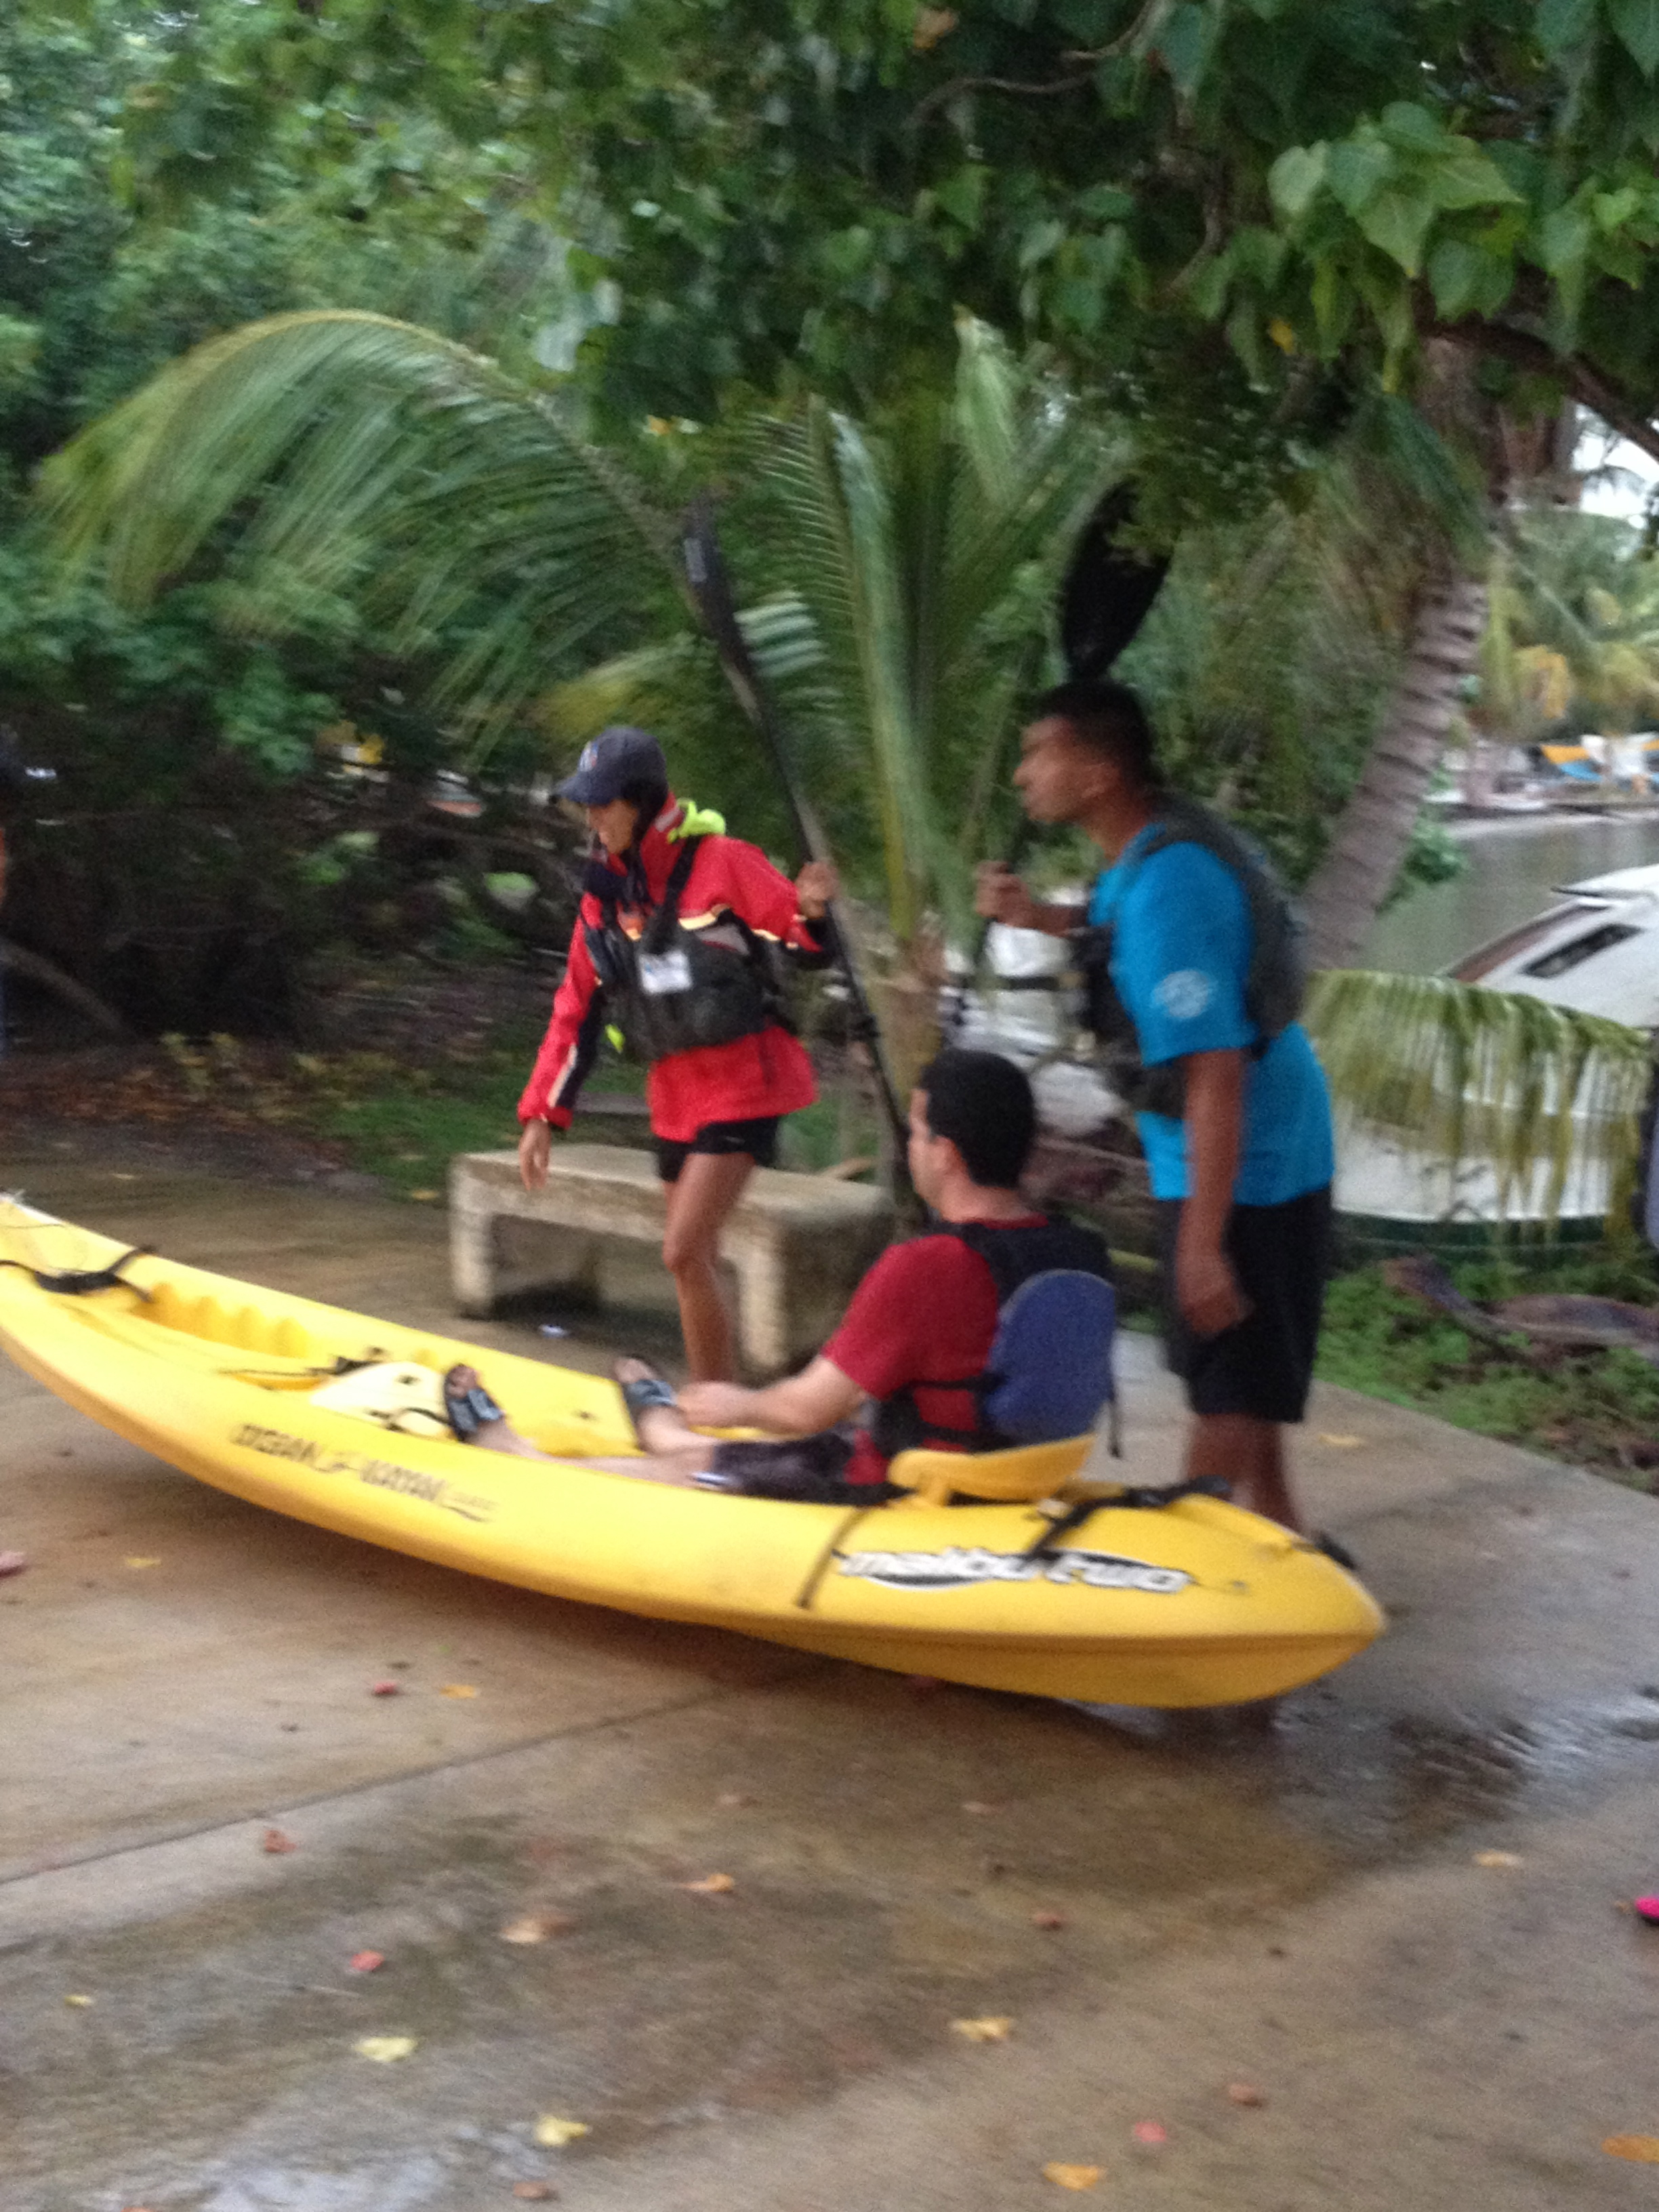 Big deal - the instructors can kayak on a sidewalk! We might be able to do that too.